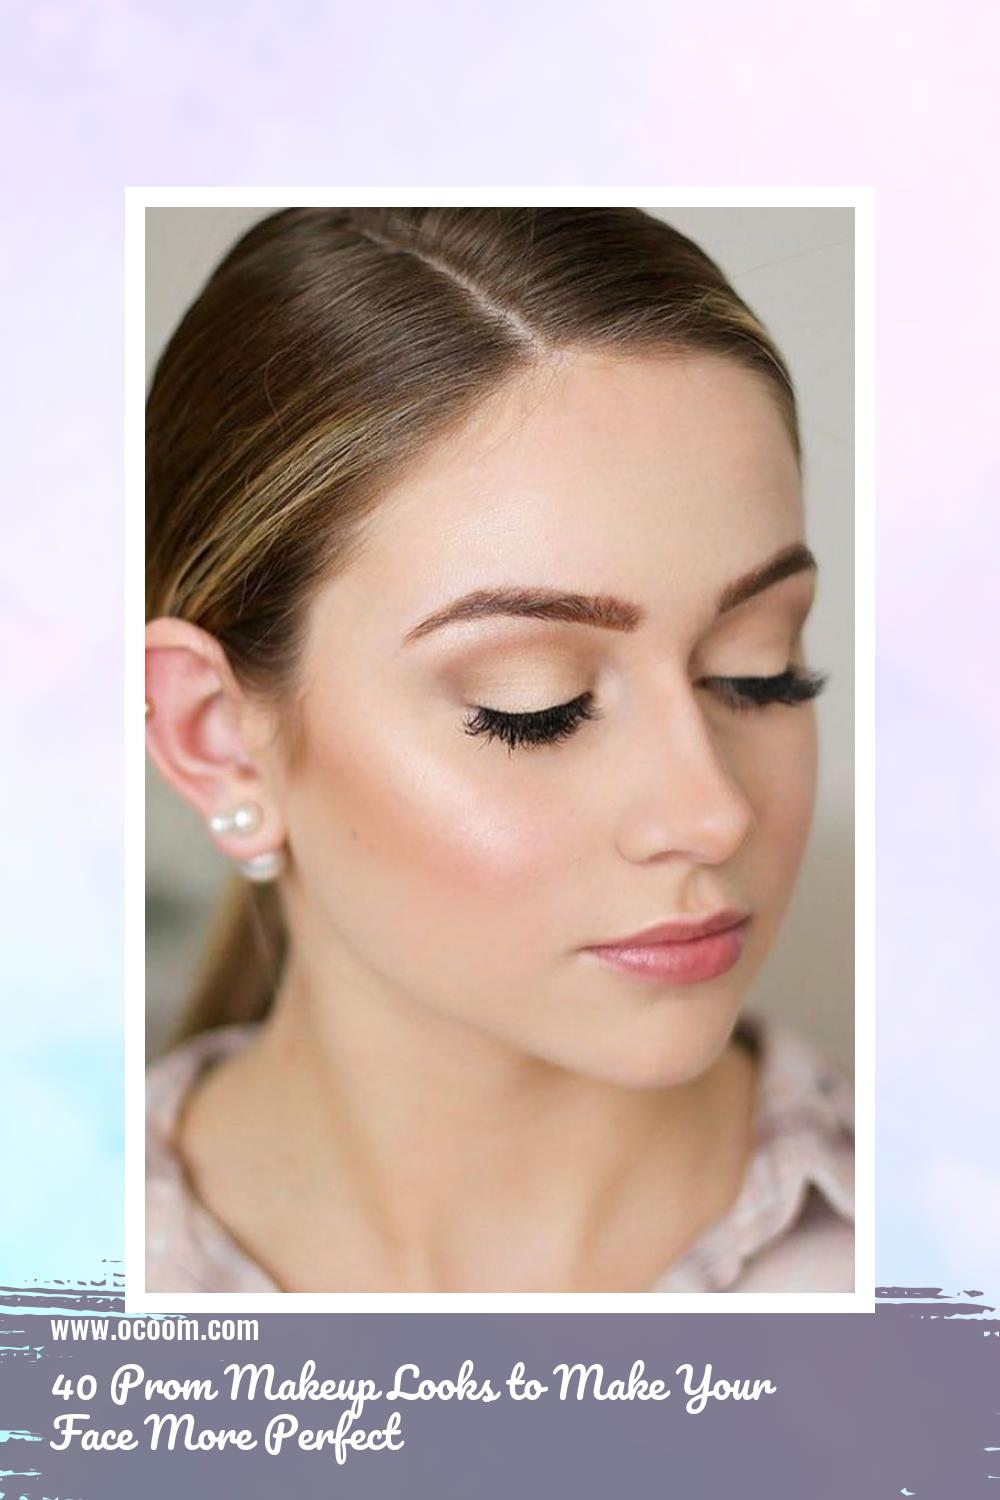 40 Prom Makeup Looks to Make Your Face More Perfect 2